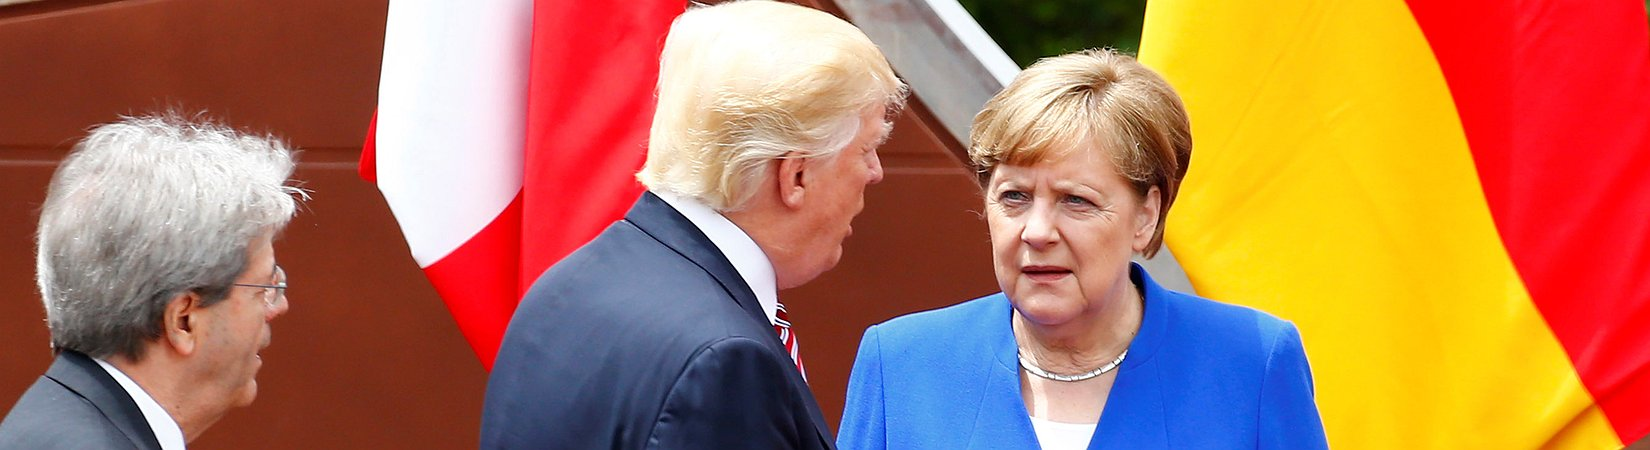 Trump decries 'very bad' Germans, threatens to end auto imports